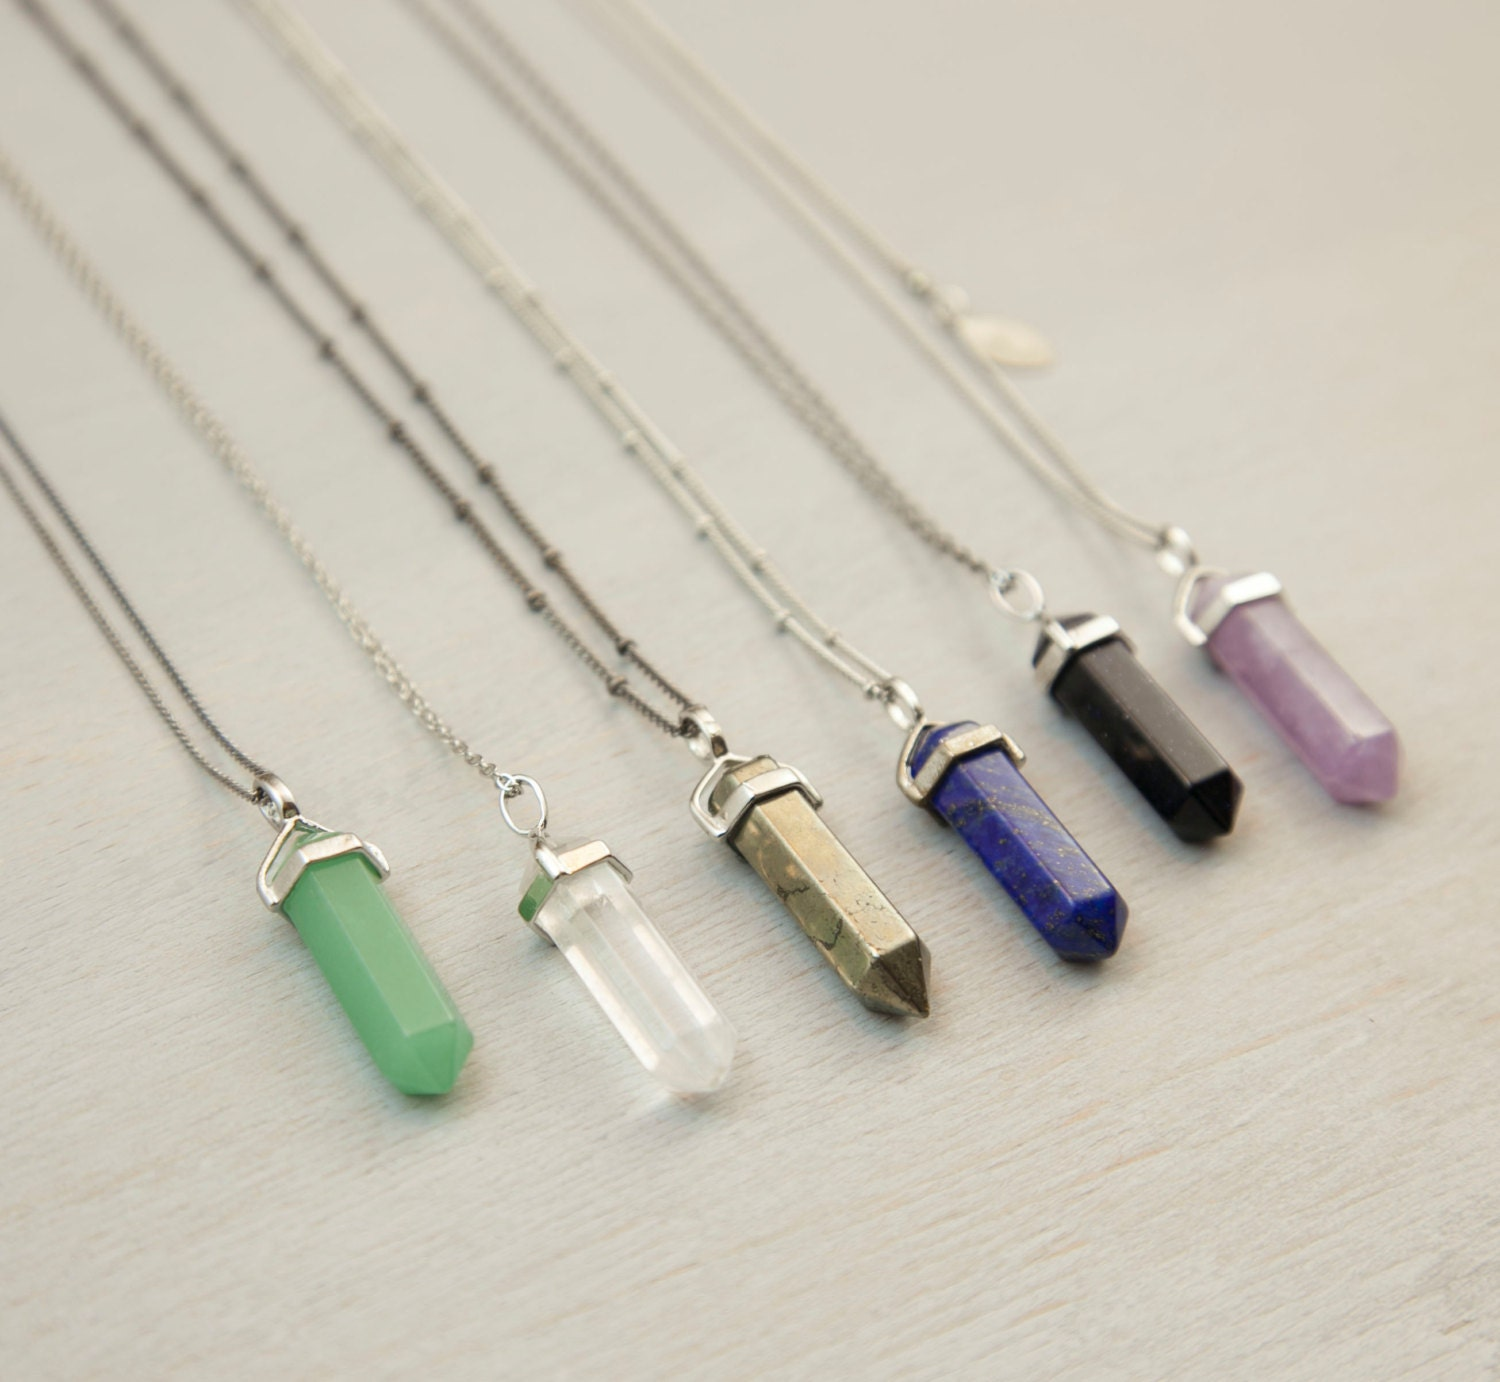 healing artilady necklace color products gold women pendant opal natural fashion jewelry stone crystal for product image